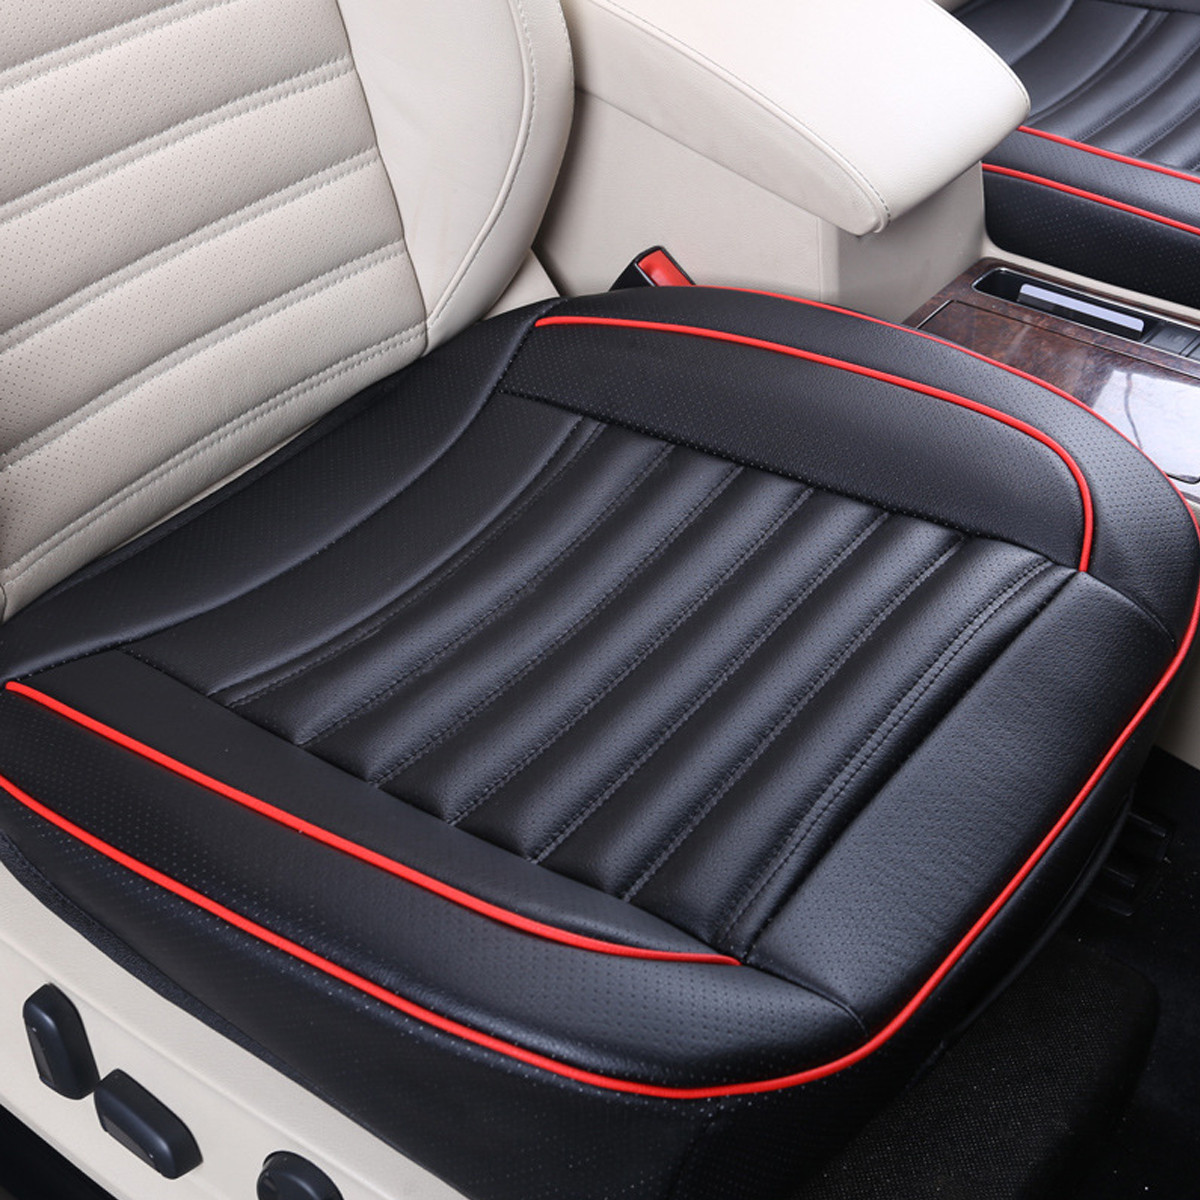 PU Leather Car Seat Cover Pad Cover Breathable Soft for Auto Seat Cushion Protection Pad Mat 50x50cm,Black color